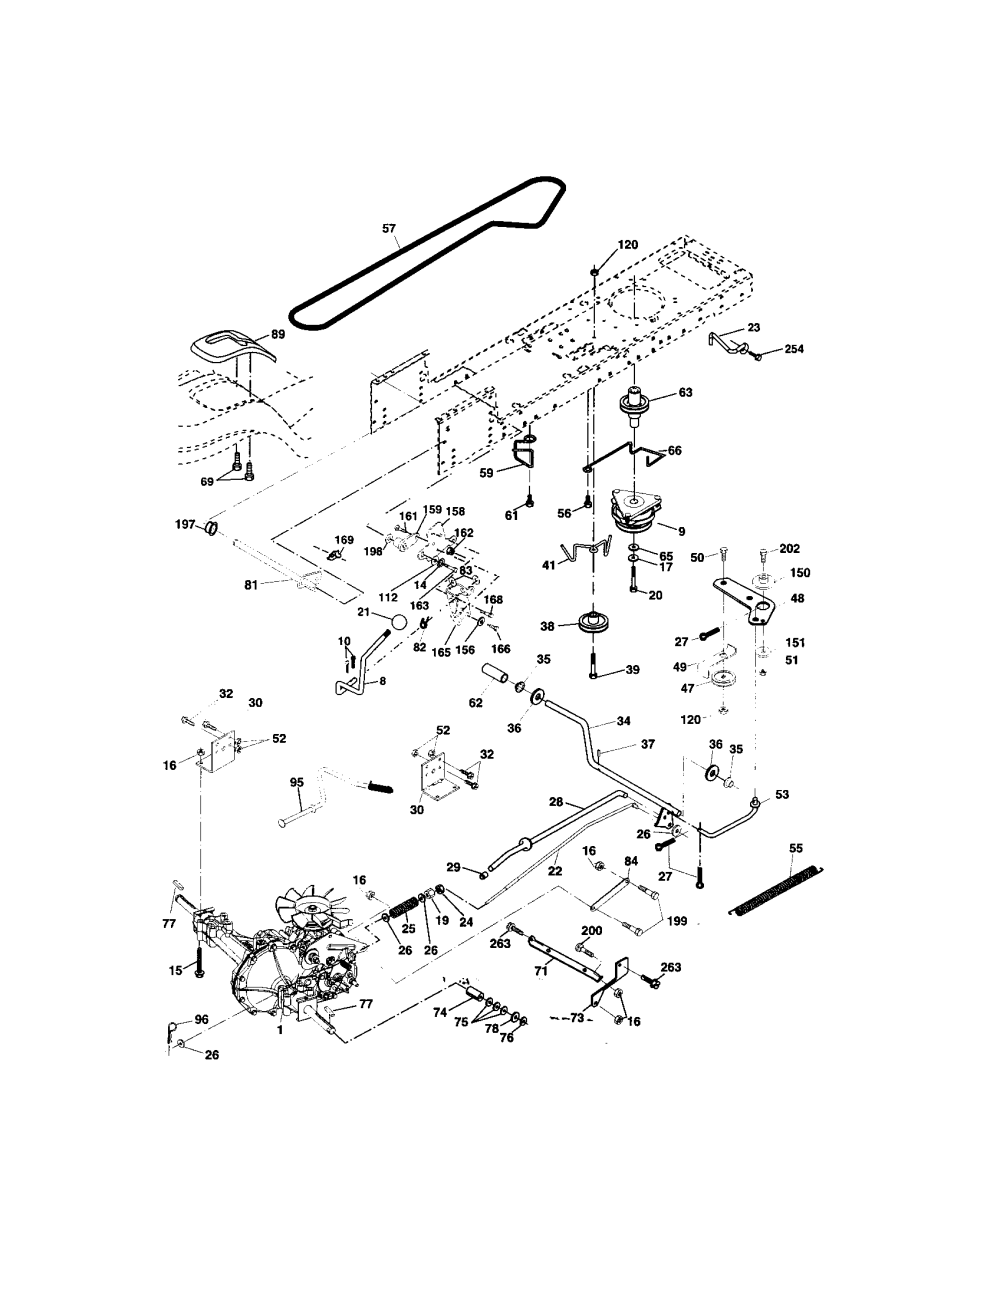 medium resolution of looking for craftsman model 917273643 front engine lawn tractor craftsman dyt 4000 transmission diagram